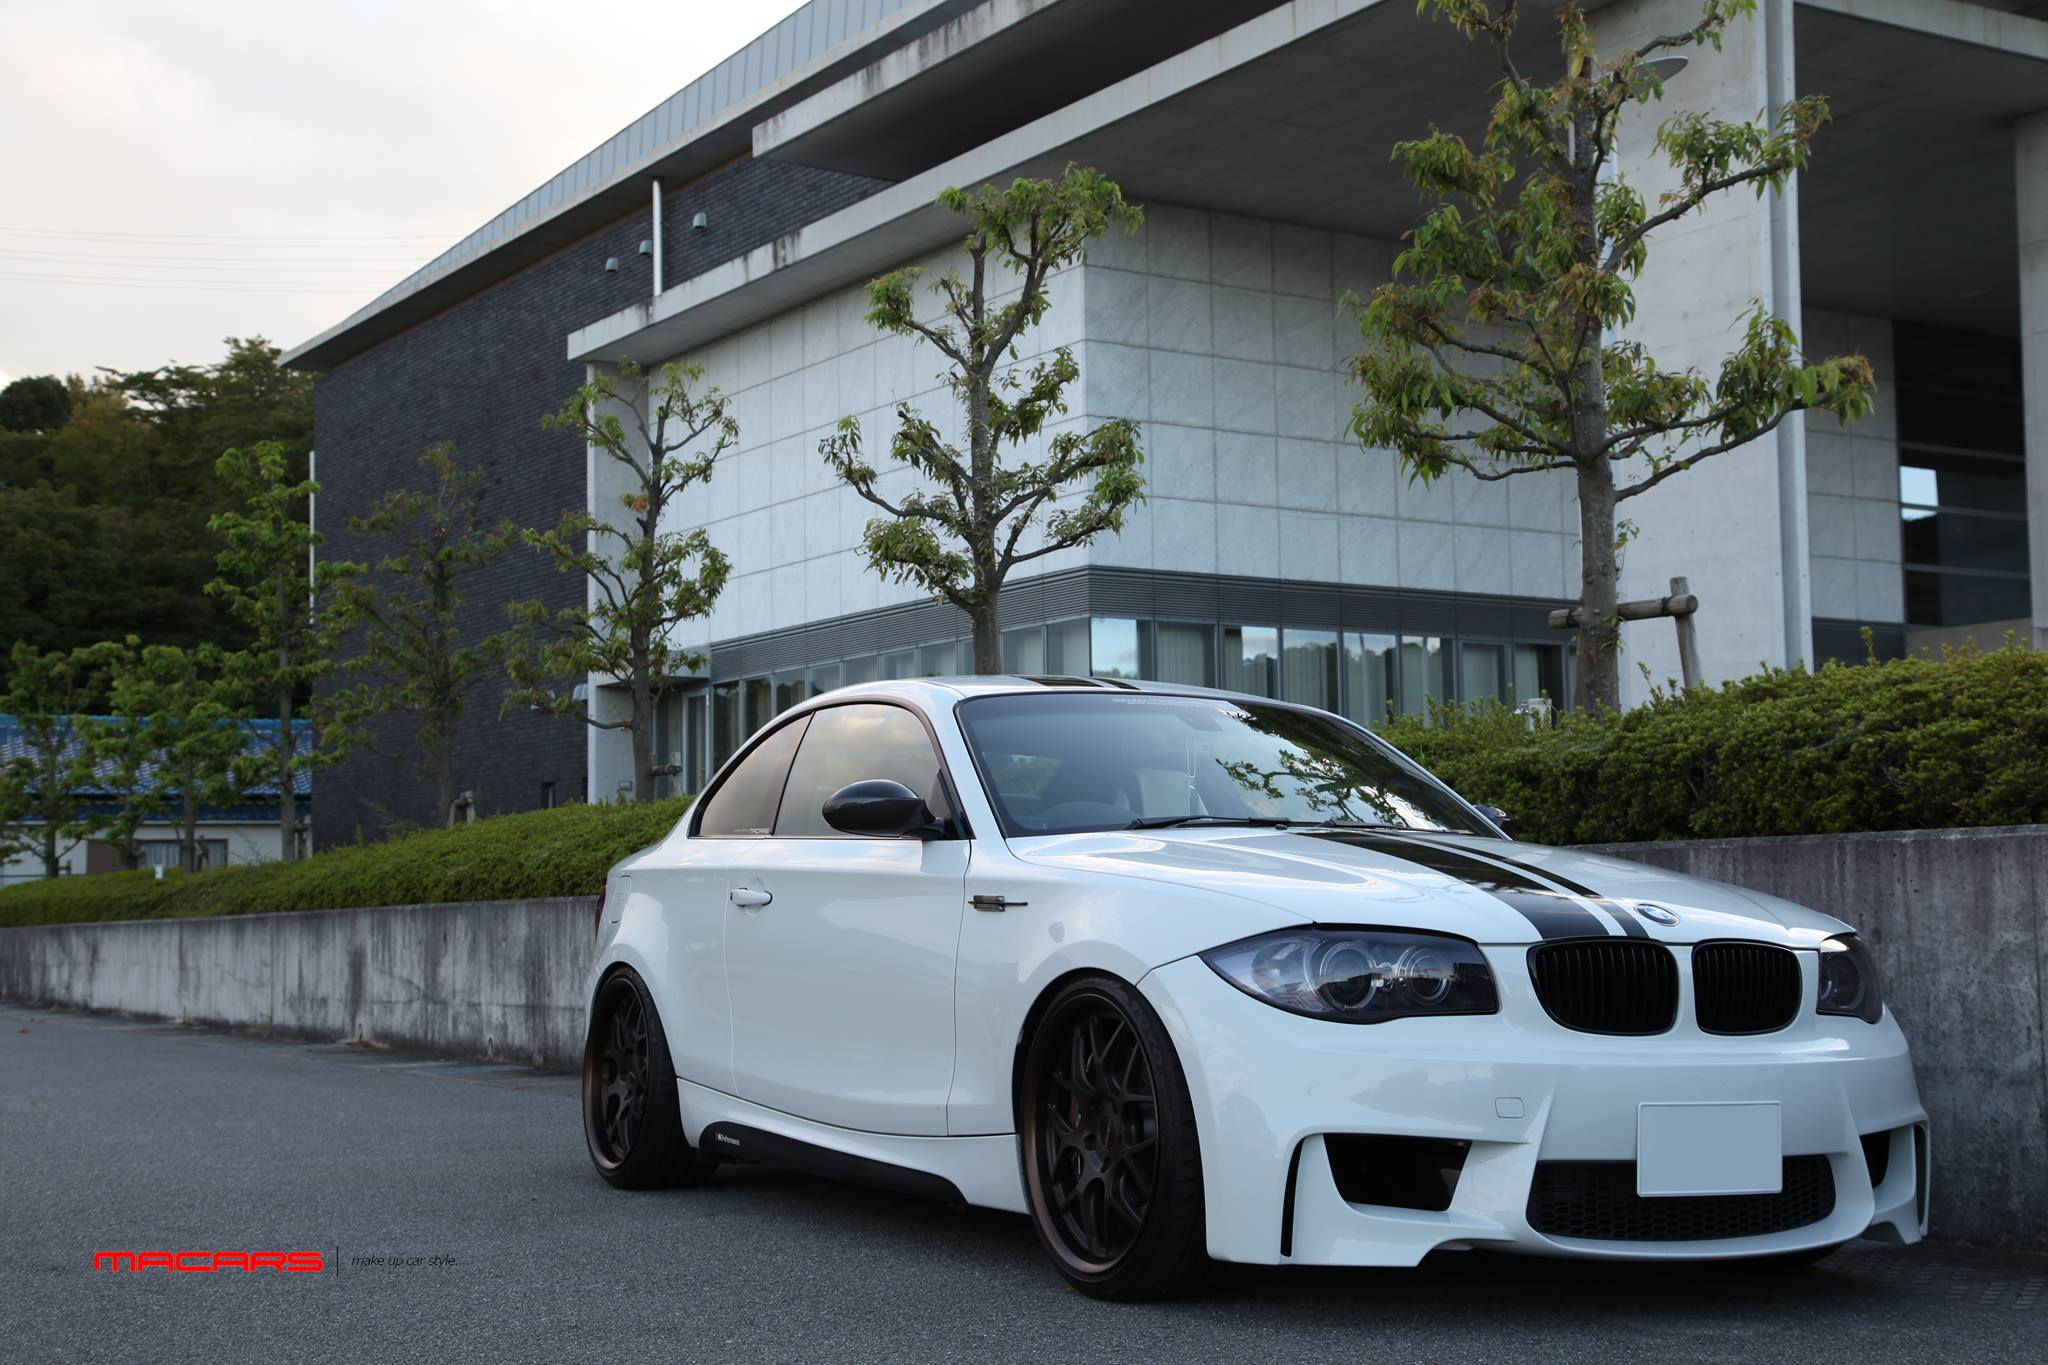 BMW E82/135i Coupe